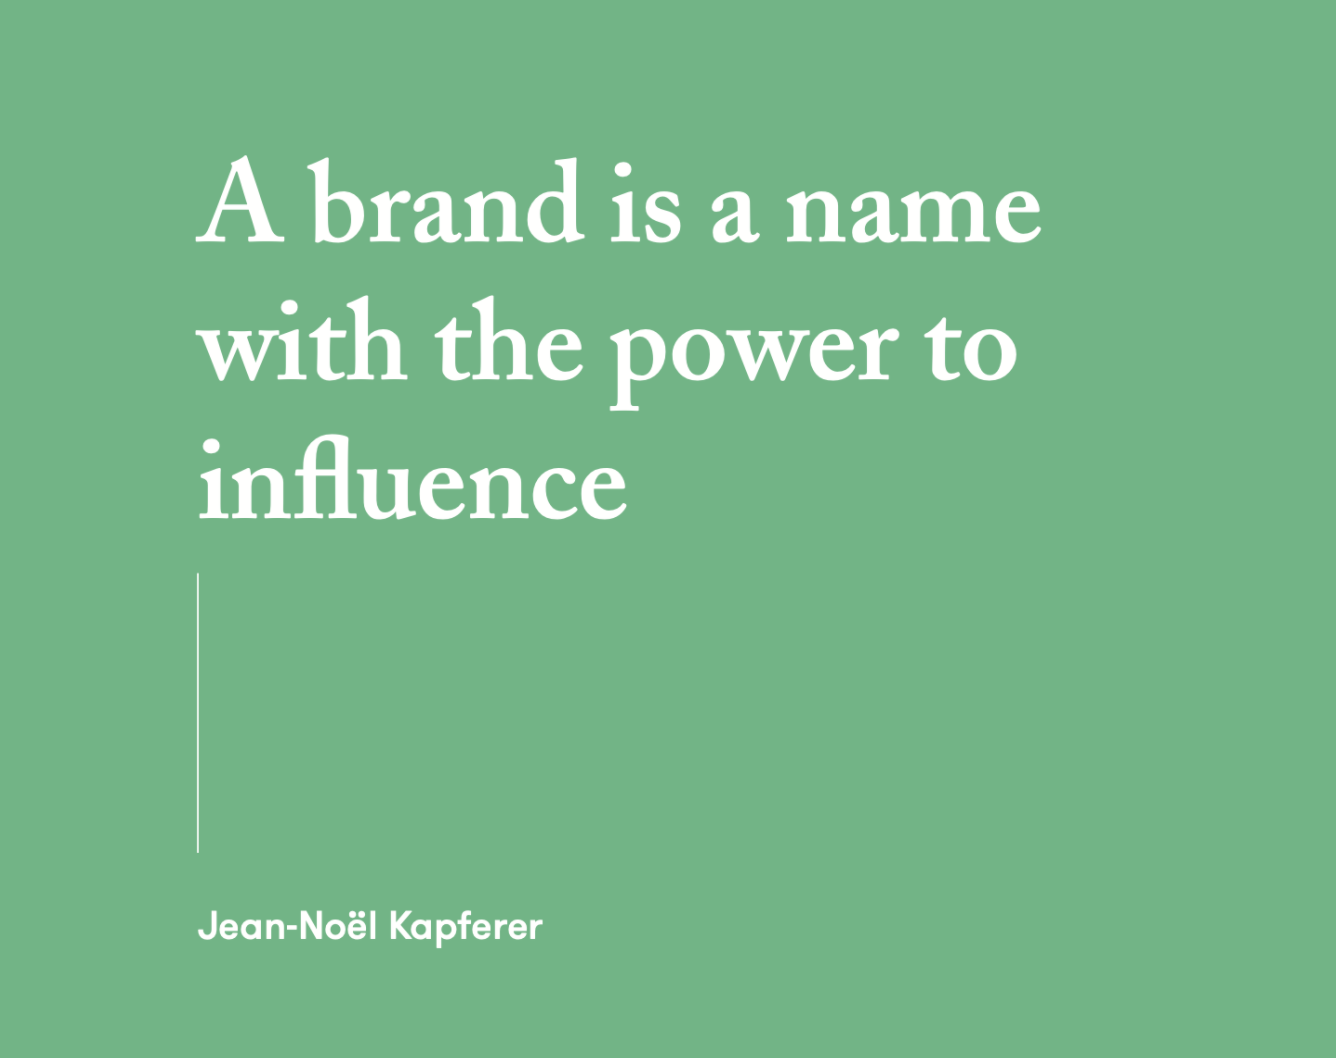 """A brand is a name with the power to influence"" by Joan Noel Kapferer"